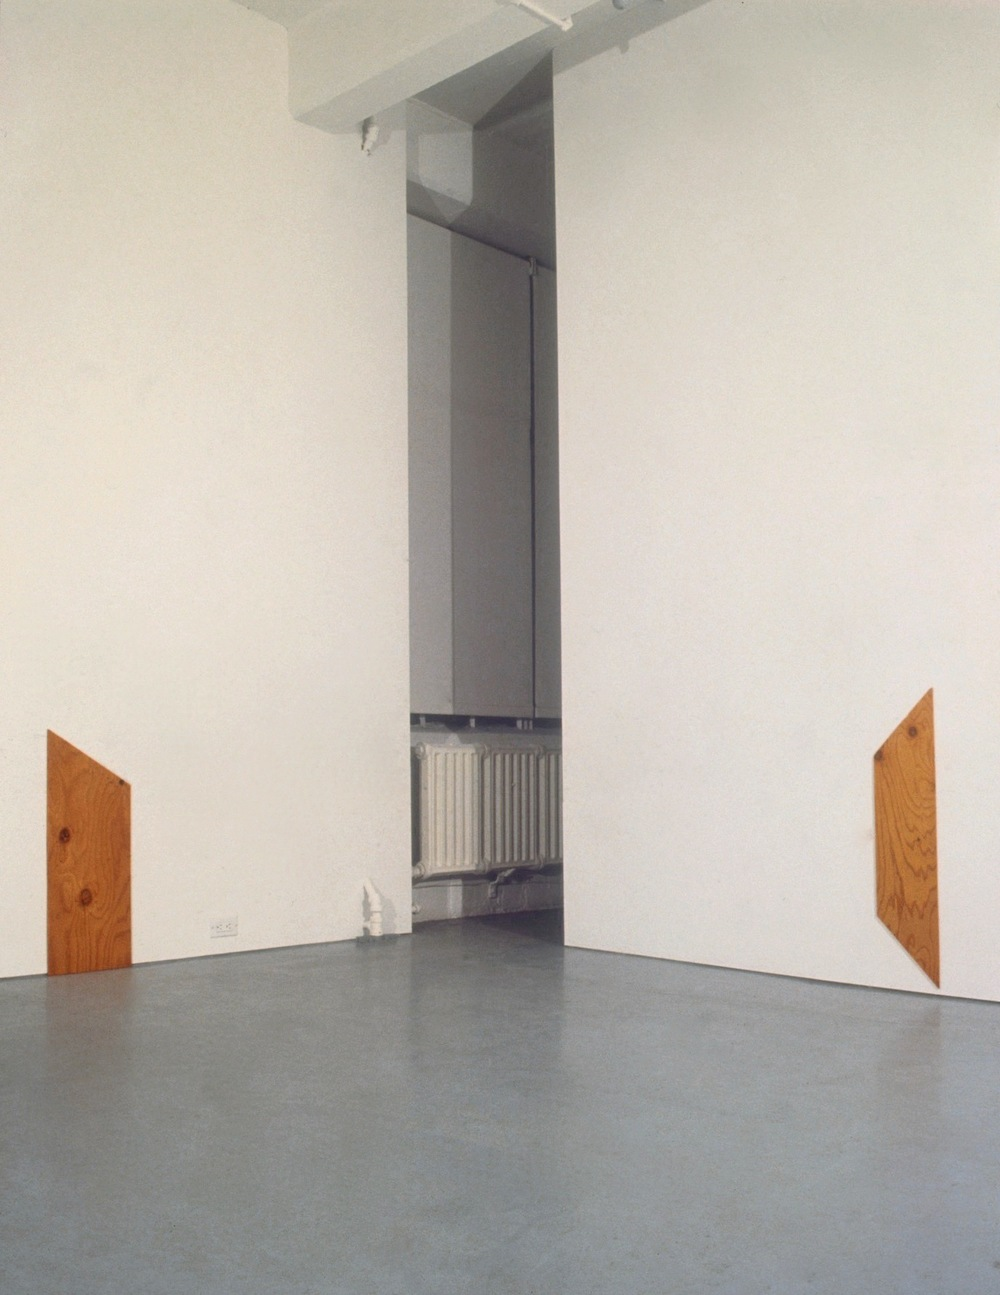 Richard Tuttle at Lawrence Markey 1990-91 1.jpeg